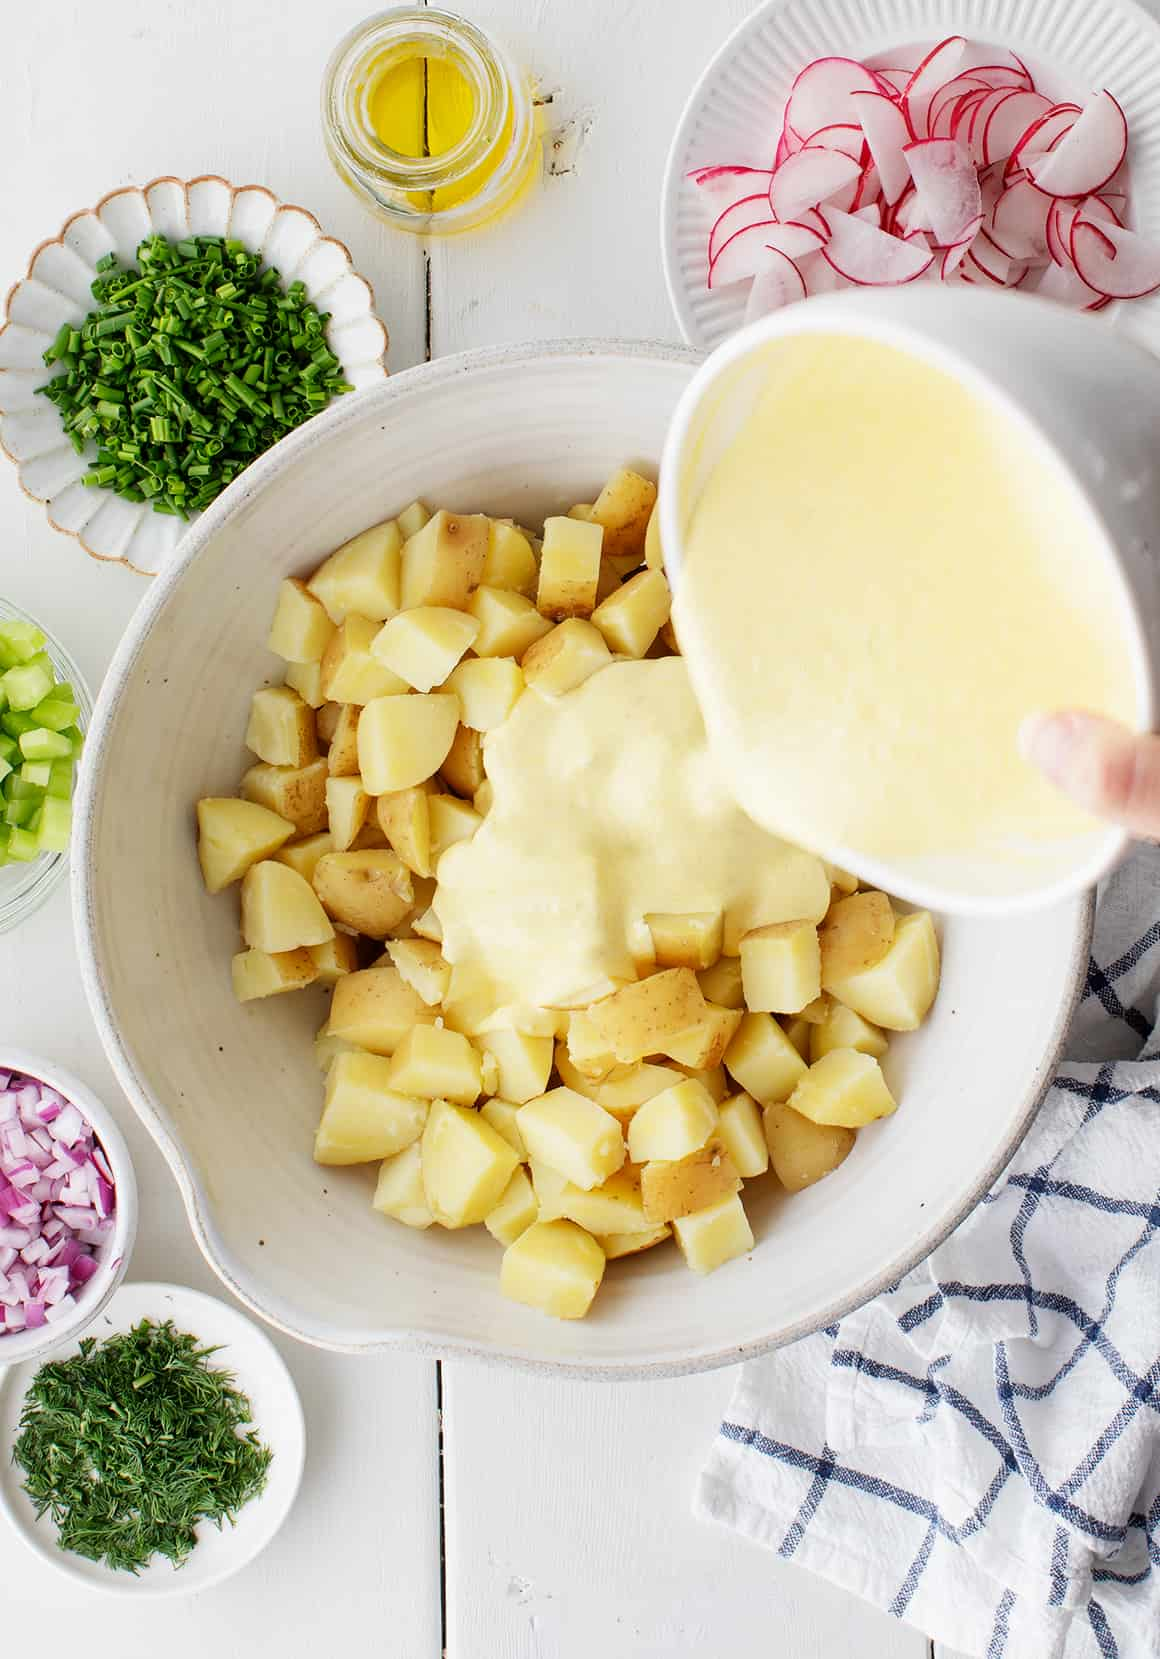 Pouring dressing over cooked potatoes in a mixing bowl